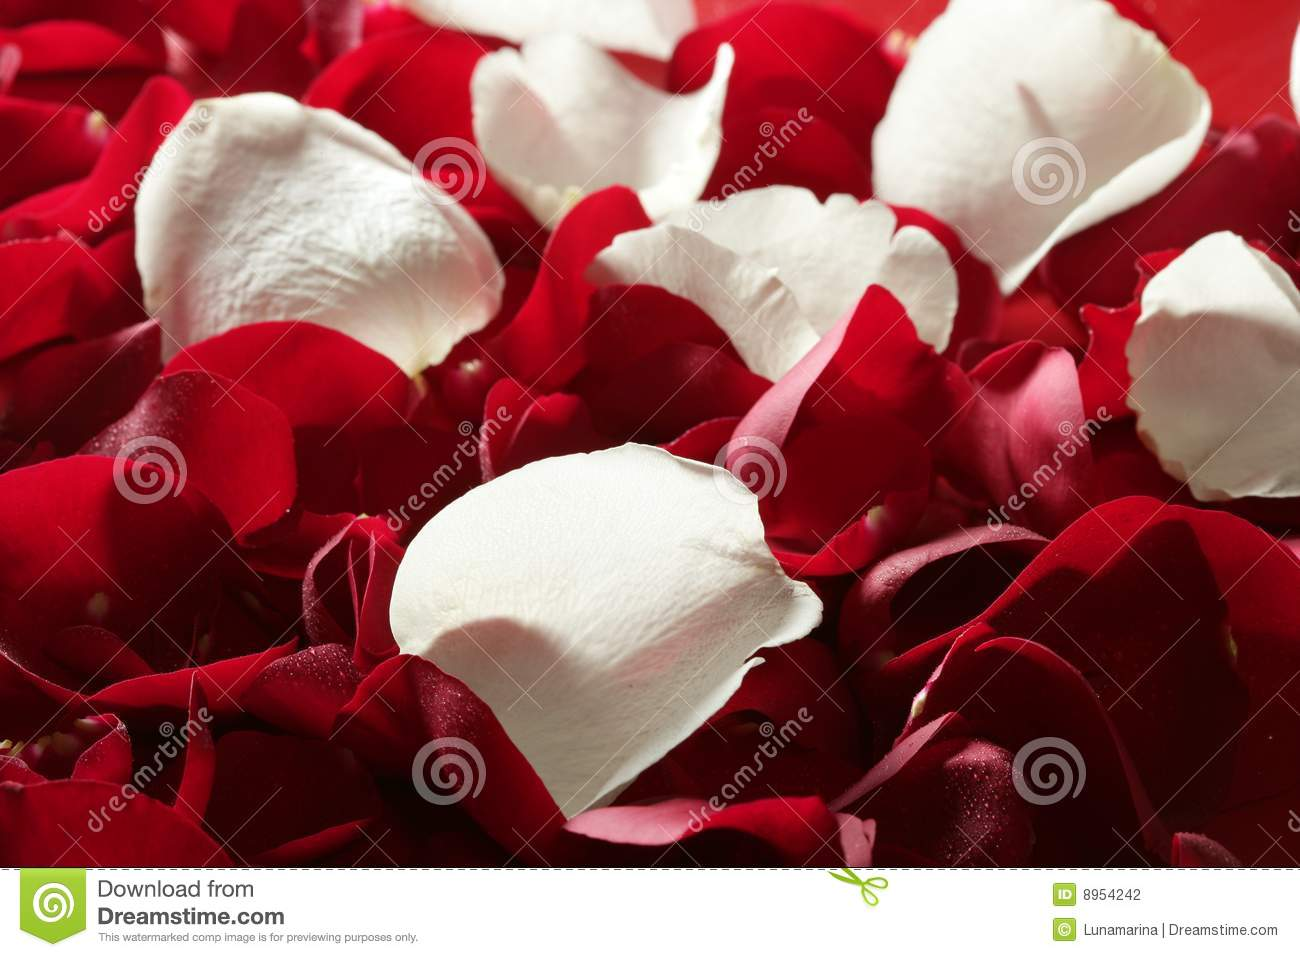 Colorful Rose Petal Pattern Wallpaper Texture Stock Photo